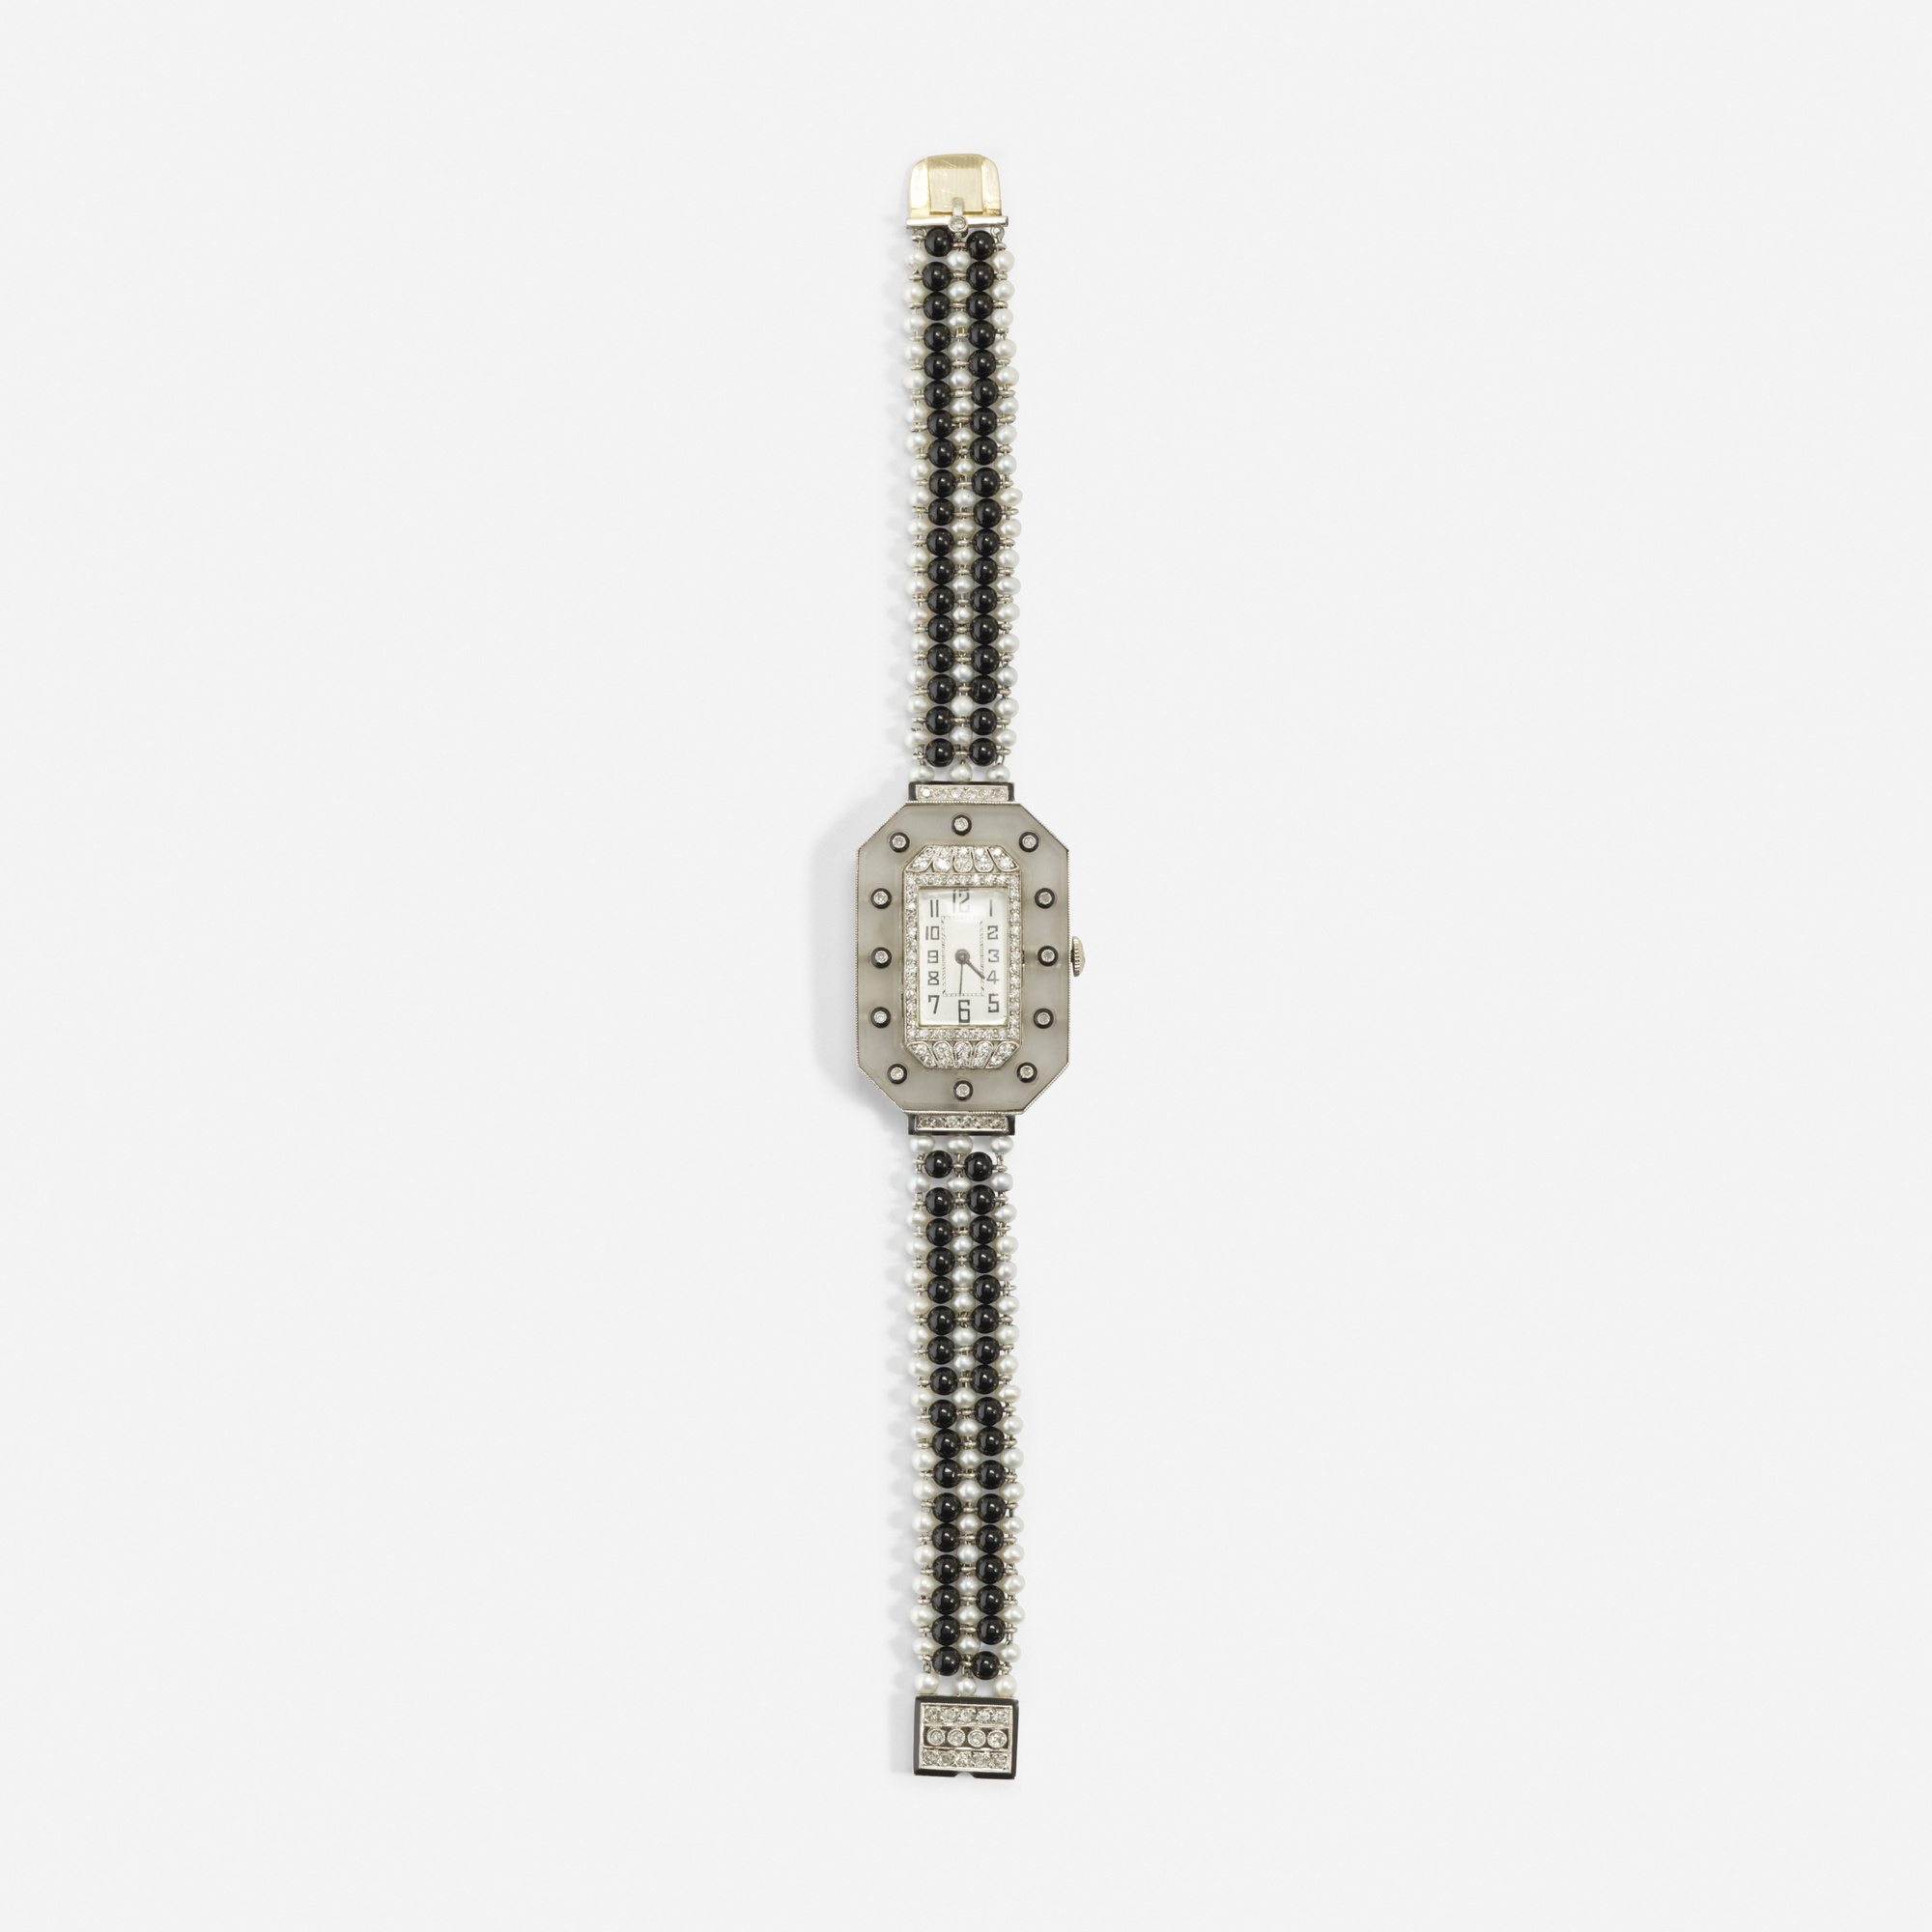 129: Art Deco / A gold, platinum, onyx, pearl, crystal and diamond watch (1 of 1)